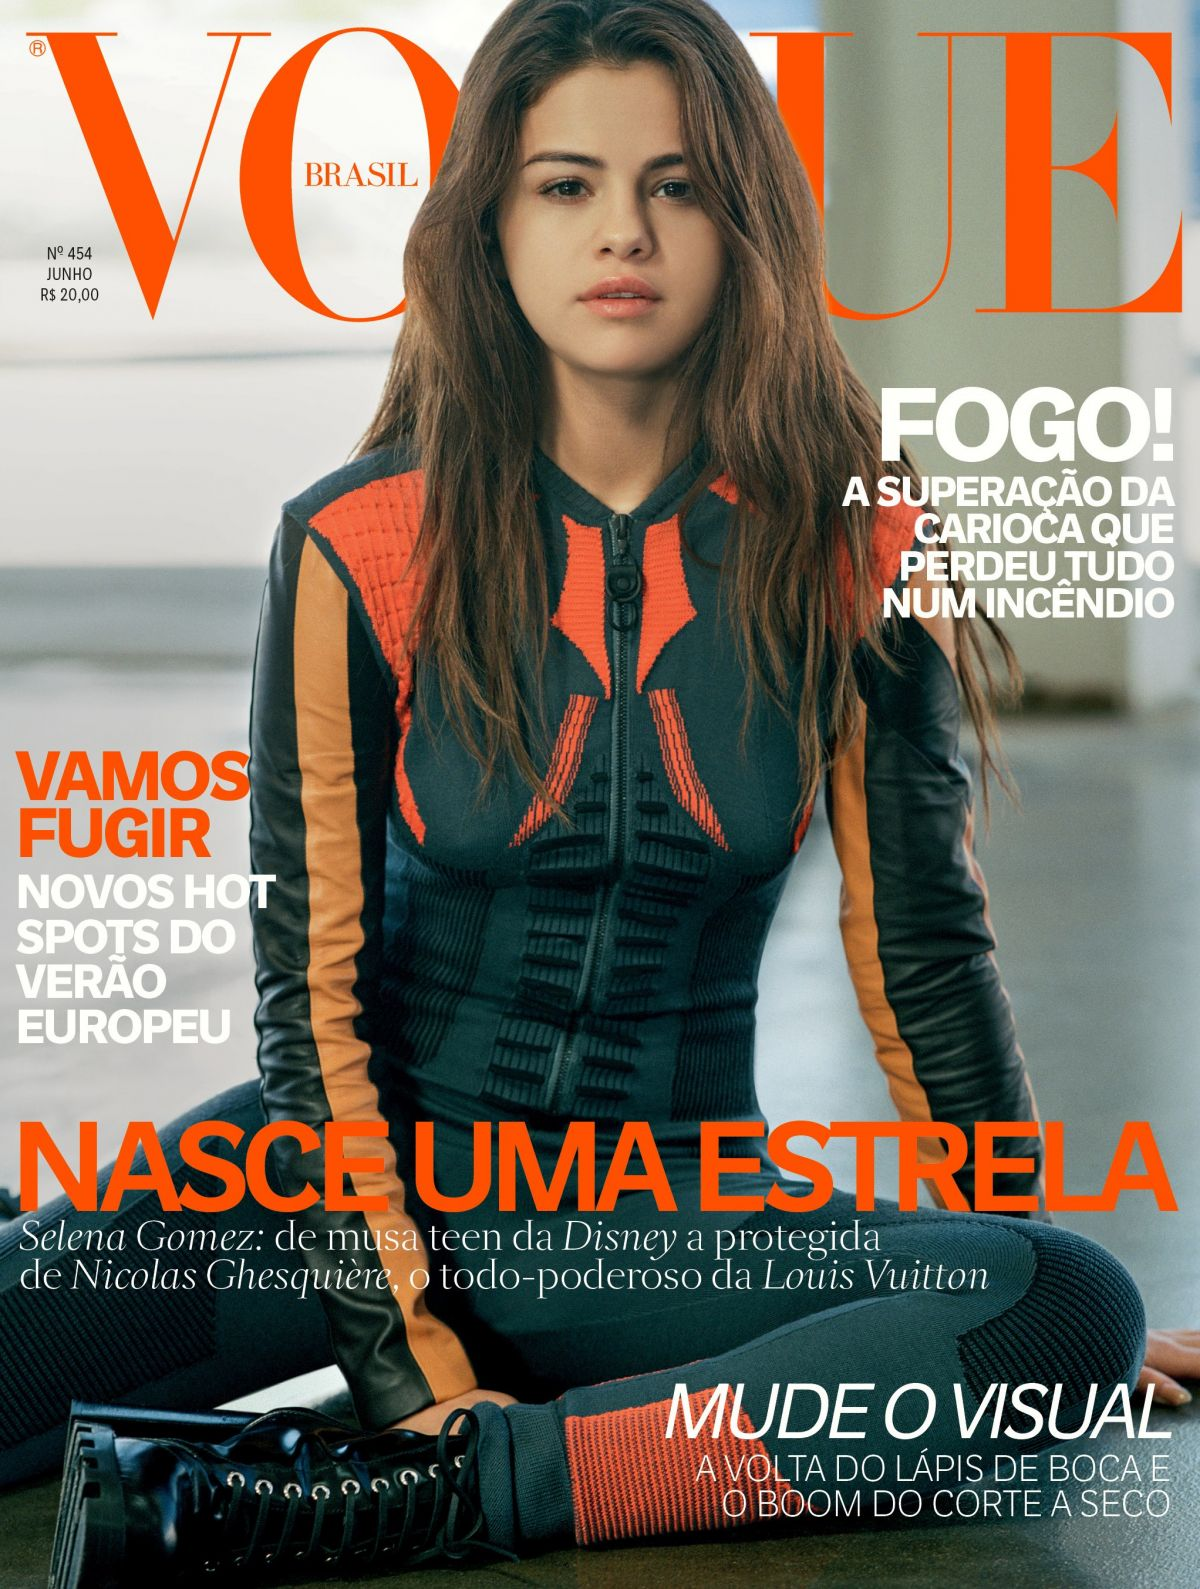 SELENA GOMEZ for Vogue Magazine, Brasil 2016